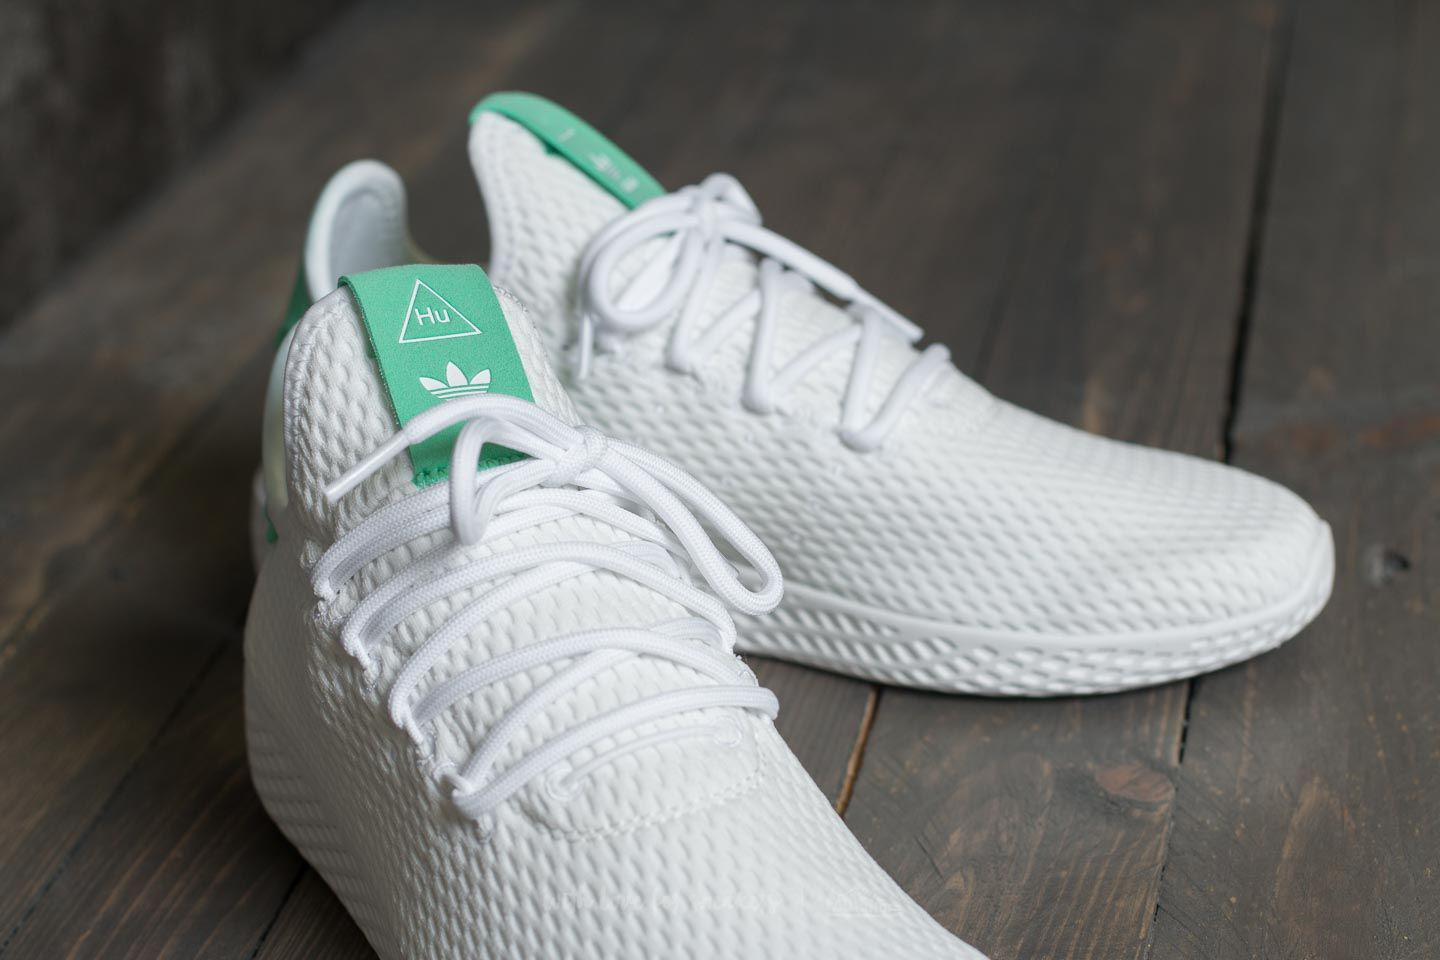 2cbf49598ead Lyst - adidas Originals Adidas Pharrell Williams Pw Tennis Hu Ftw ...